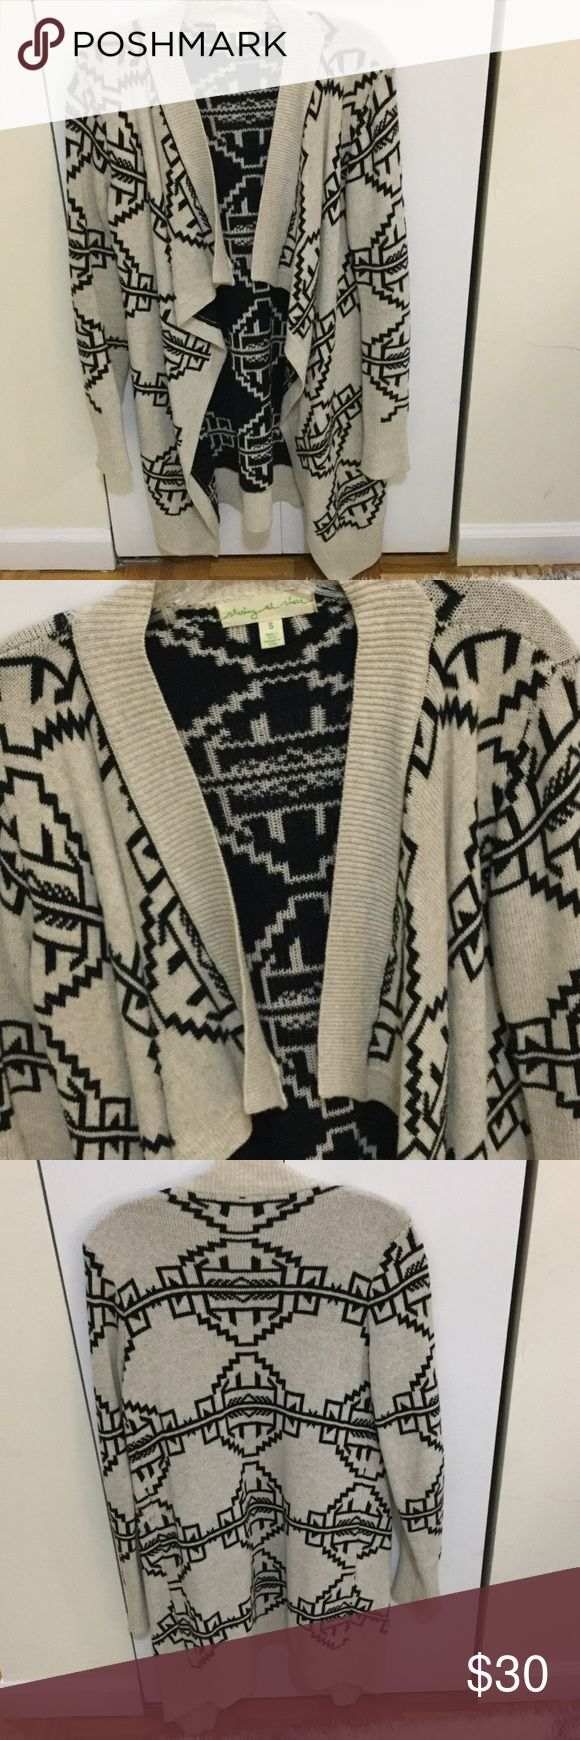 Urban Outfitters Long Aztec Cardigan Staring at Stars (Urban Outfitters) cream and black long Aztec print cardigan- good condition Urban Outfitters Sweaters Cardigans